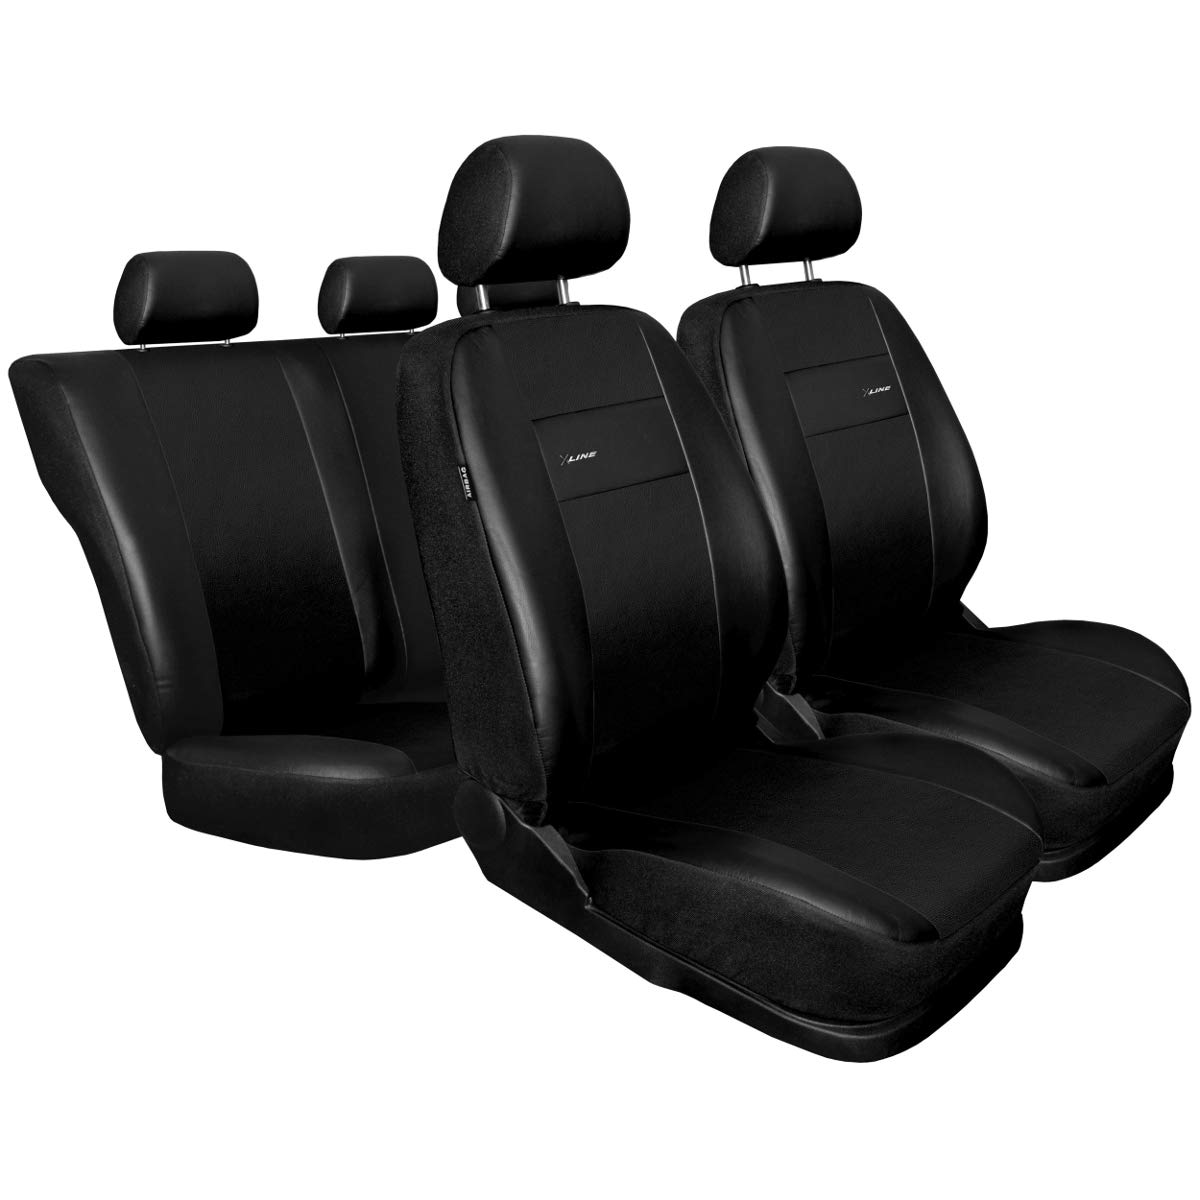 Mossa XL-B Universal Car Seat Covers Set - faux leather - 5902538593243